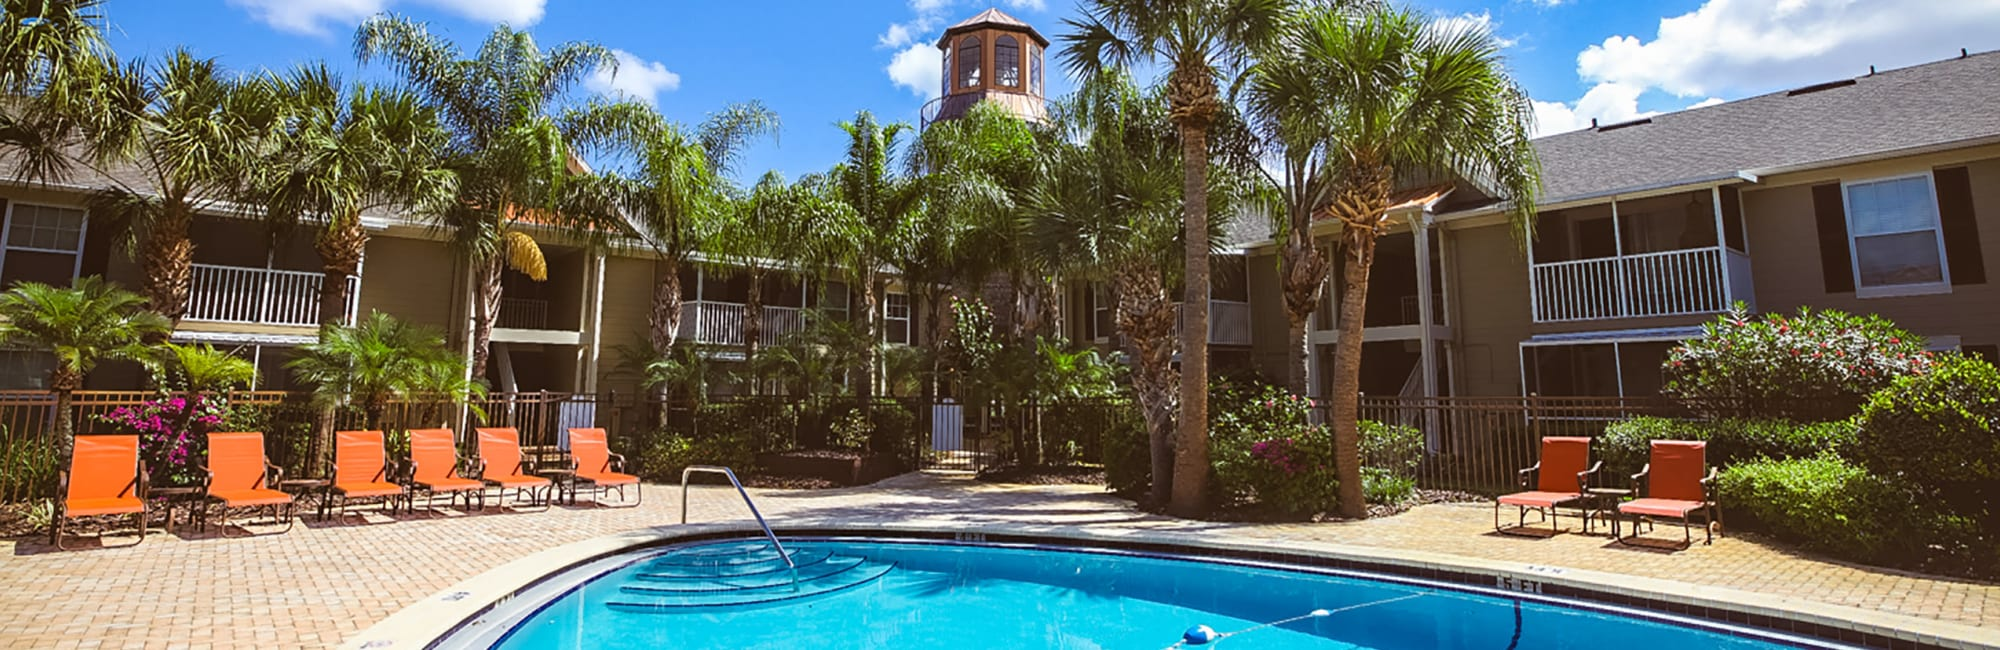 Winter Park, Florida, apartments at Signal Pointe Apartment Homes